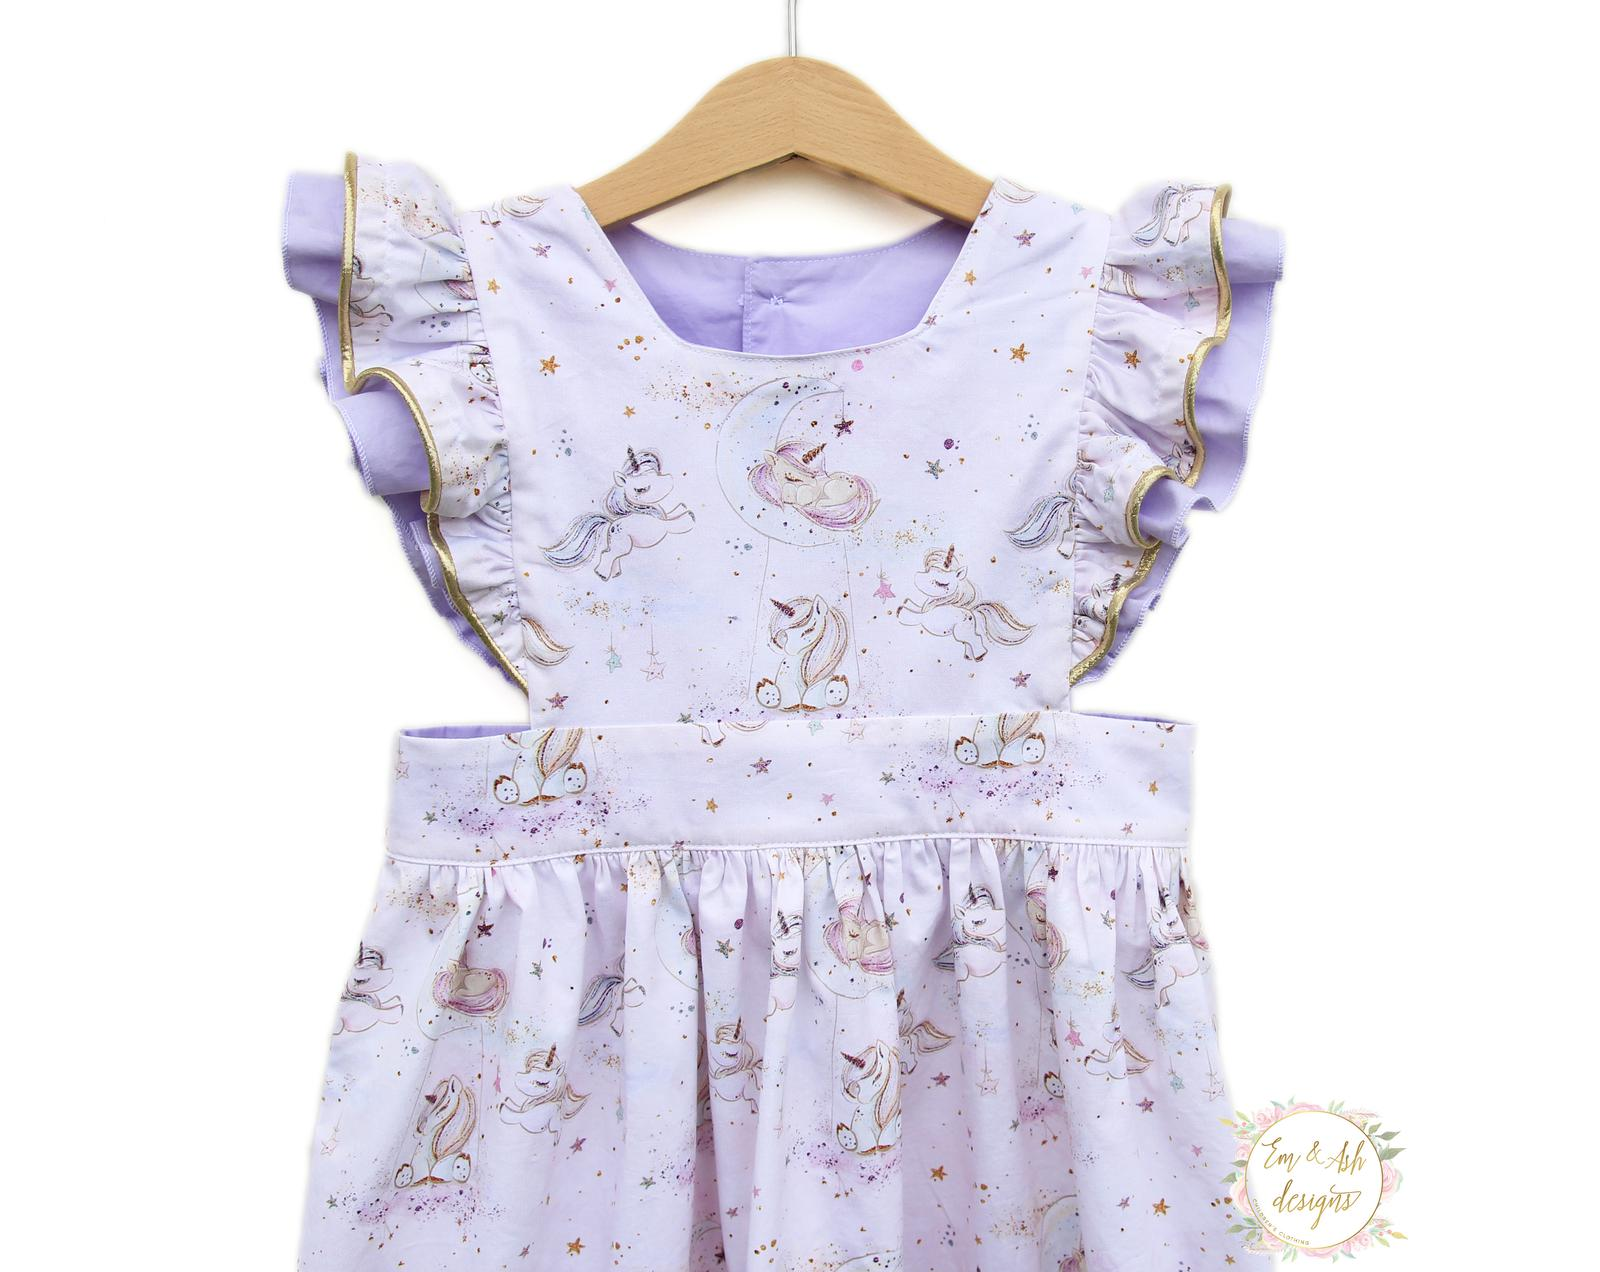 Dreamy unicorn pinafore dress